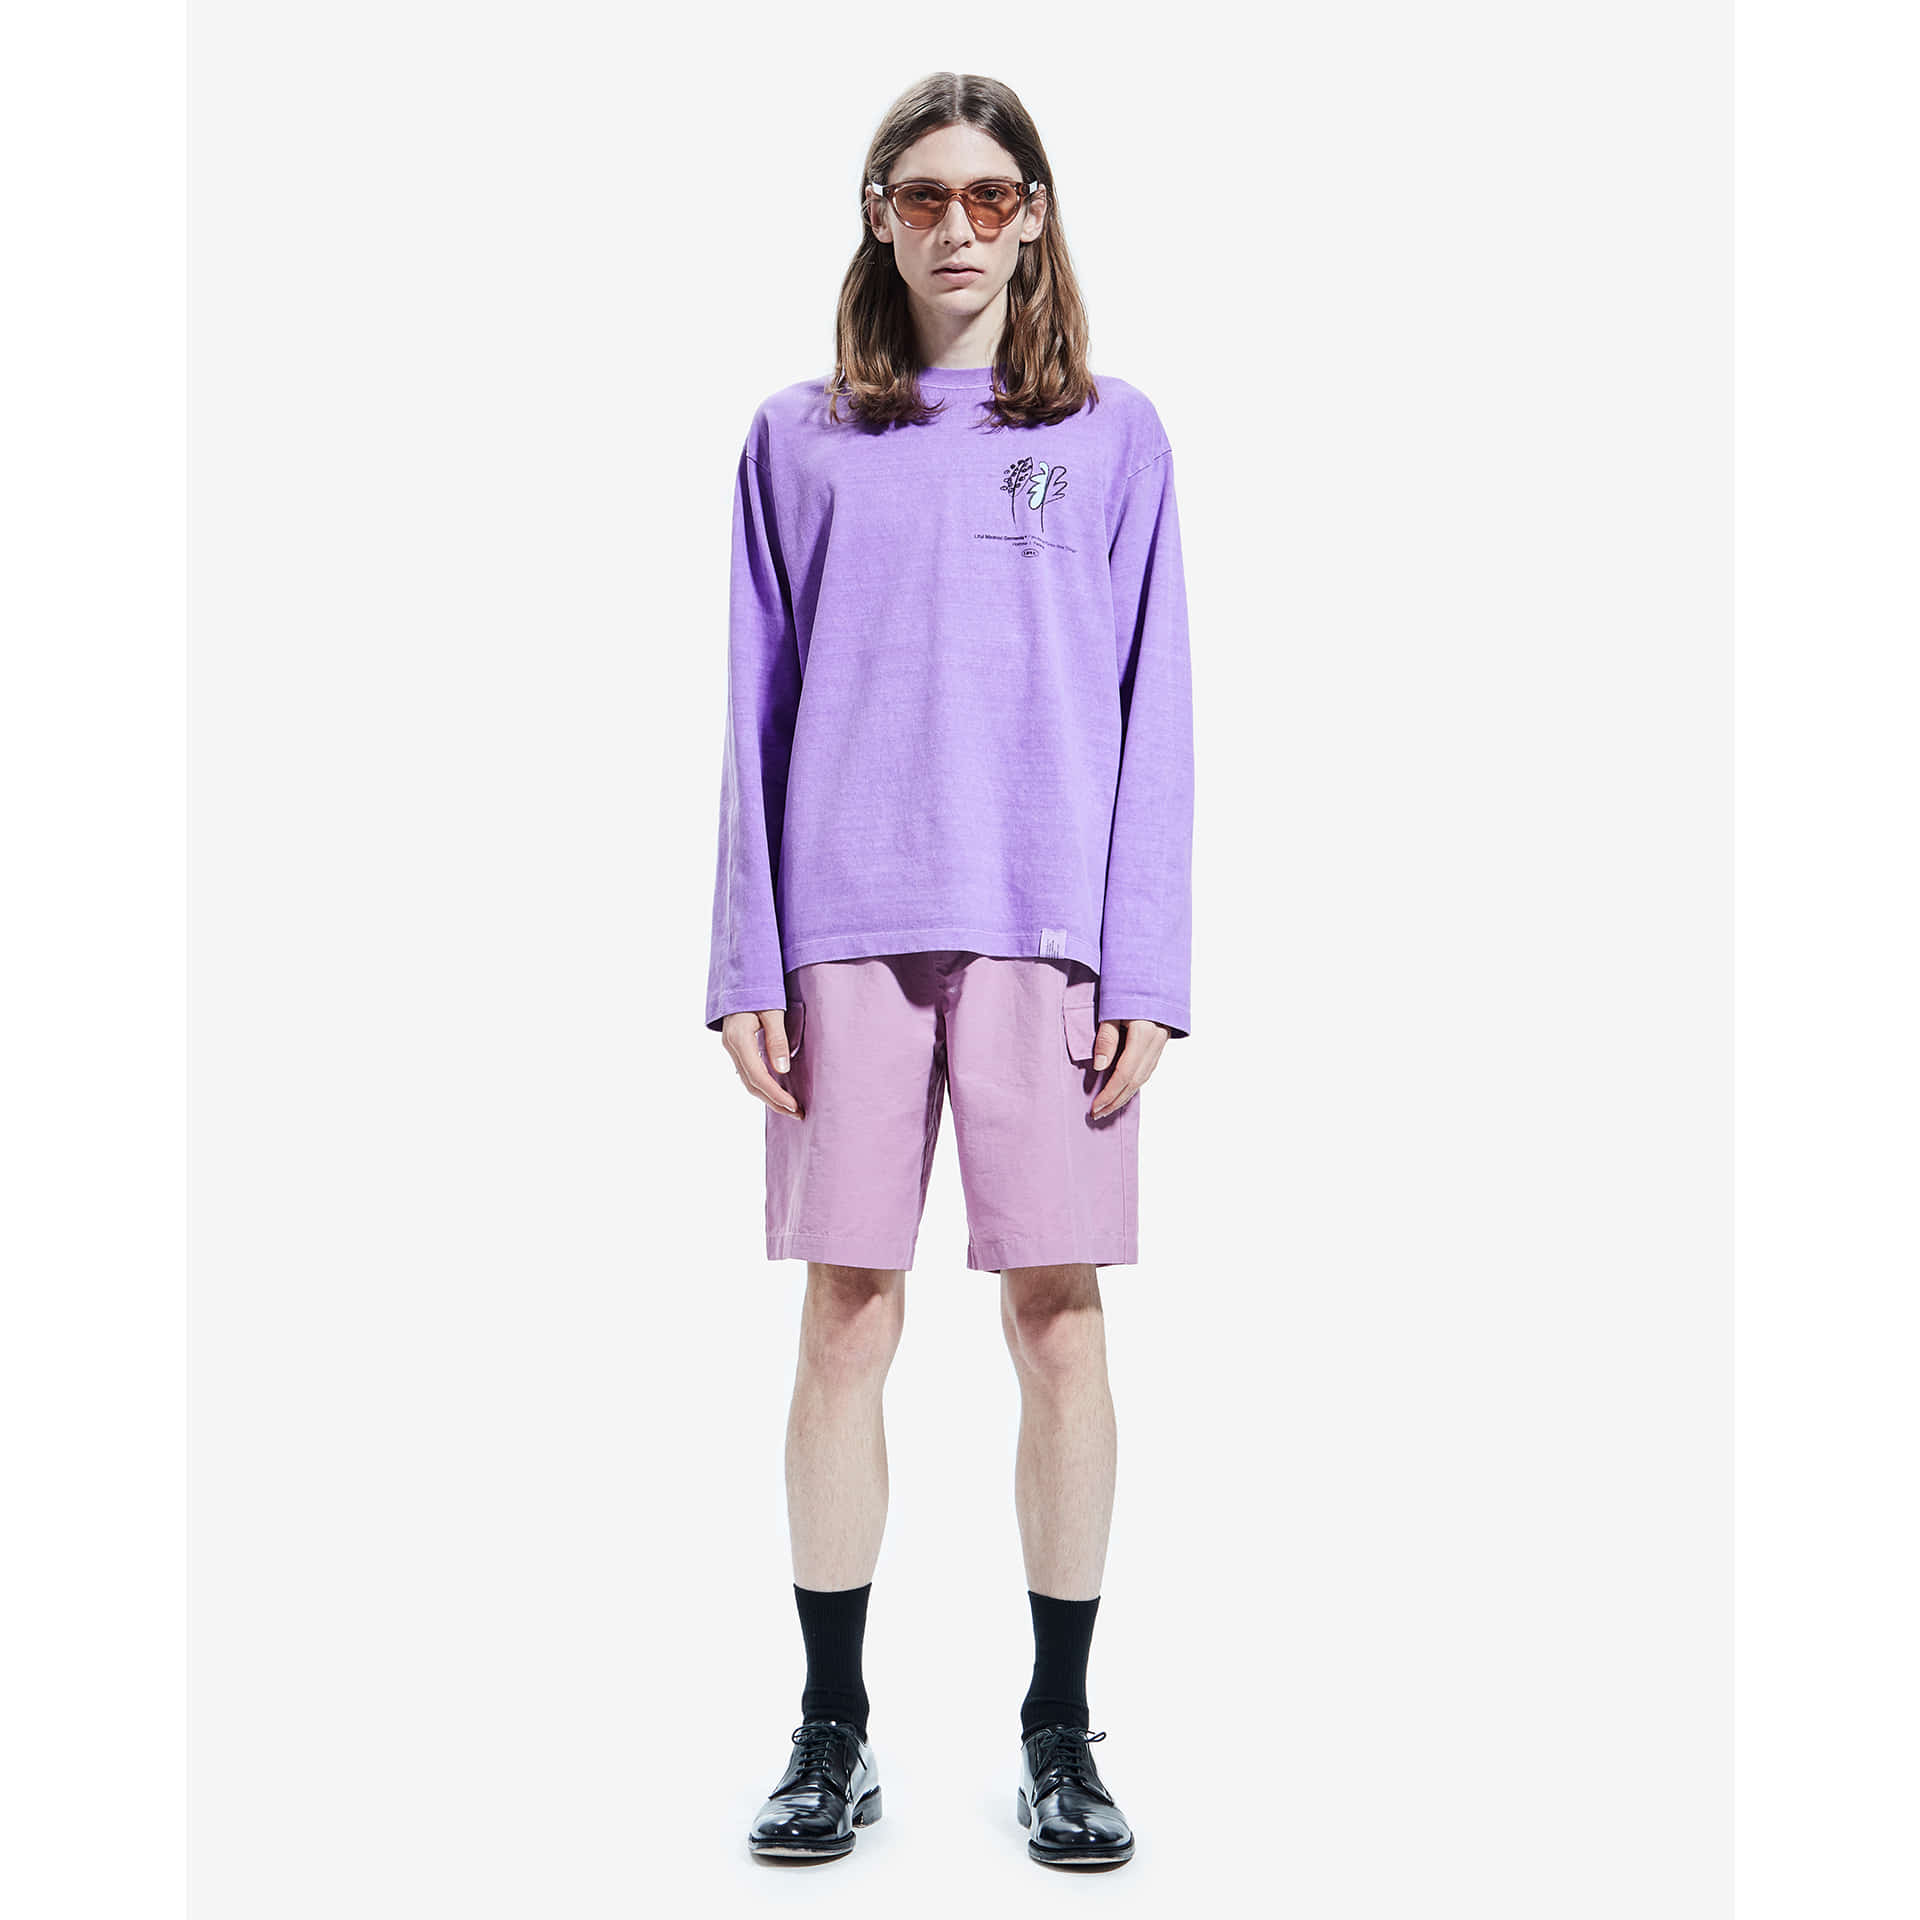 layer-P-DYED FLOWER LONG SLEEVE TEE violet♡韓國男裝上衣